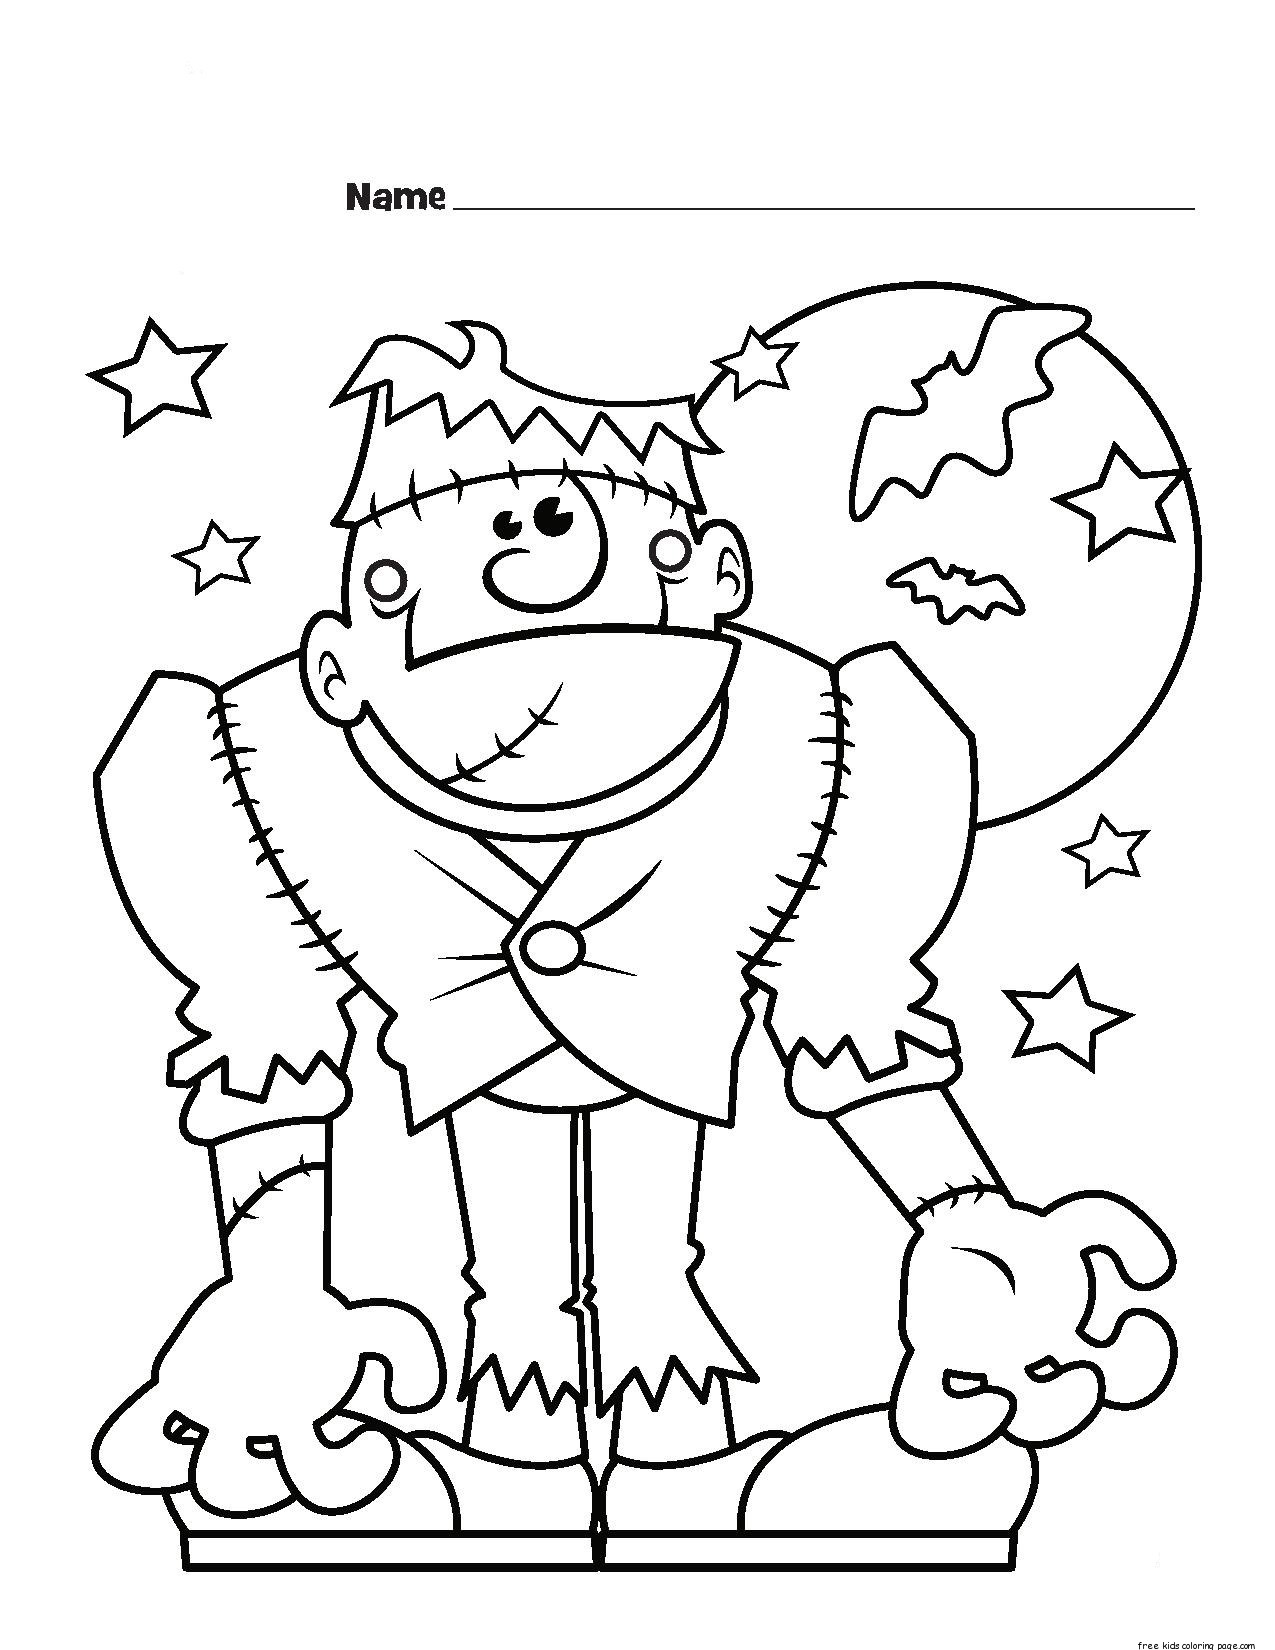 Frankenstein Monster Halloween Coloring Page For Kidsfree